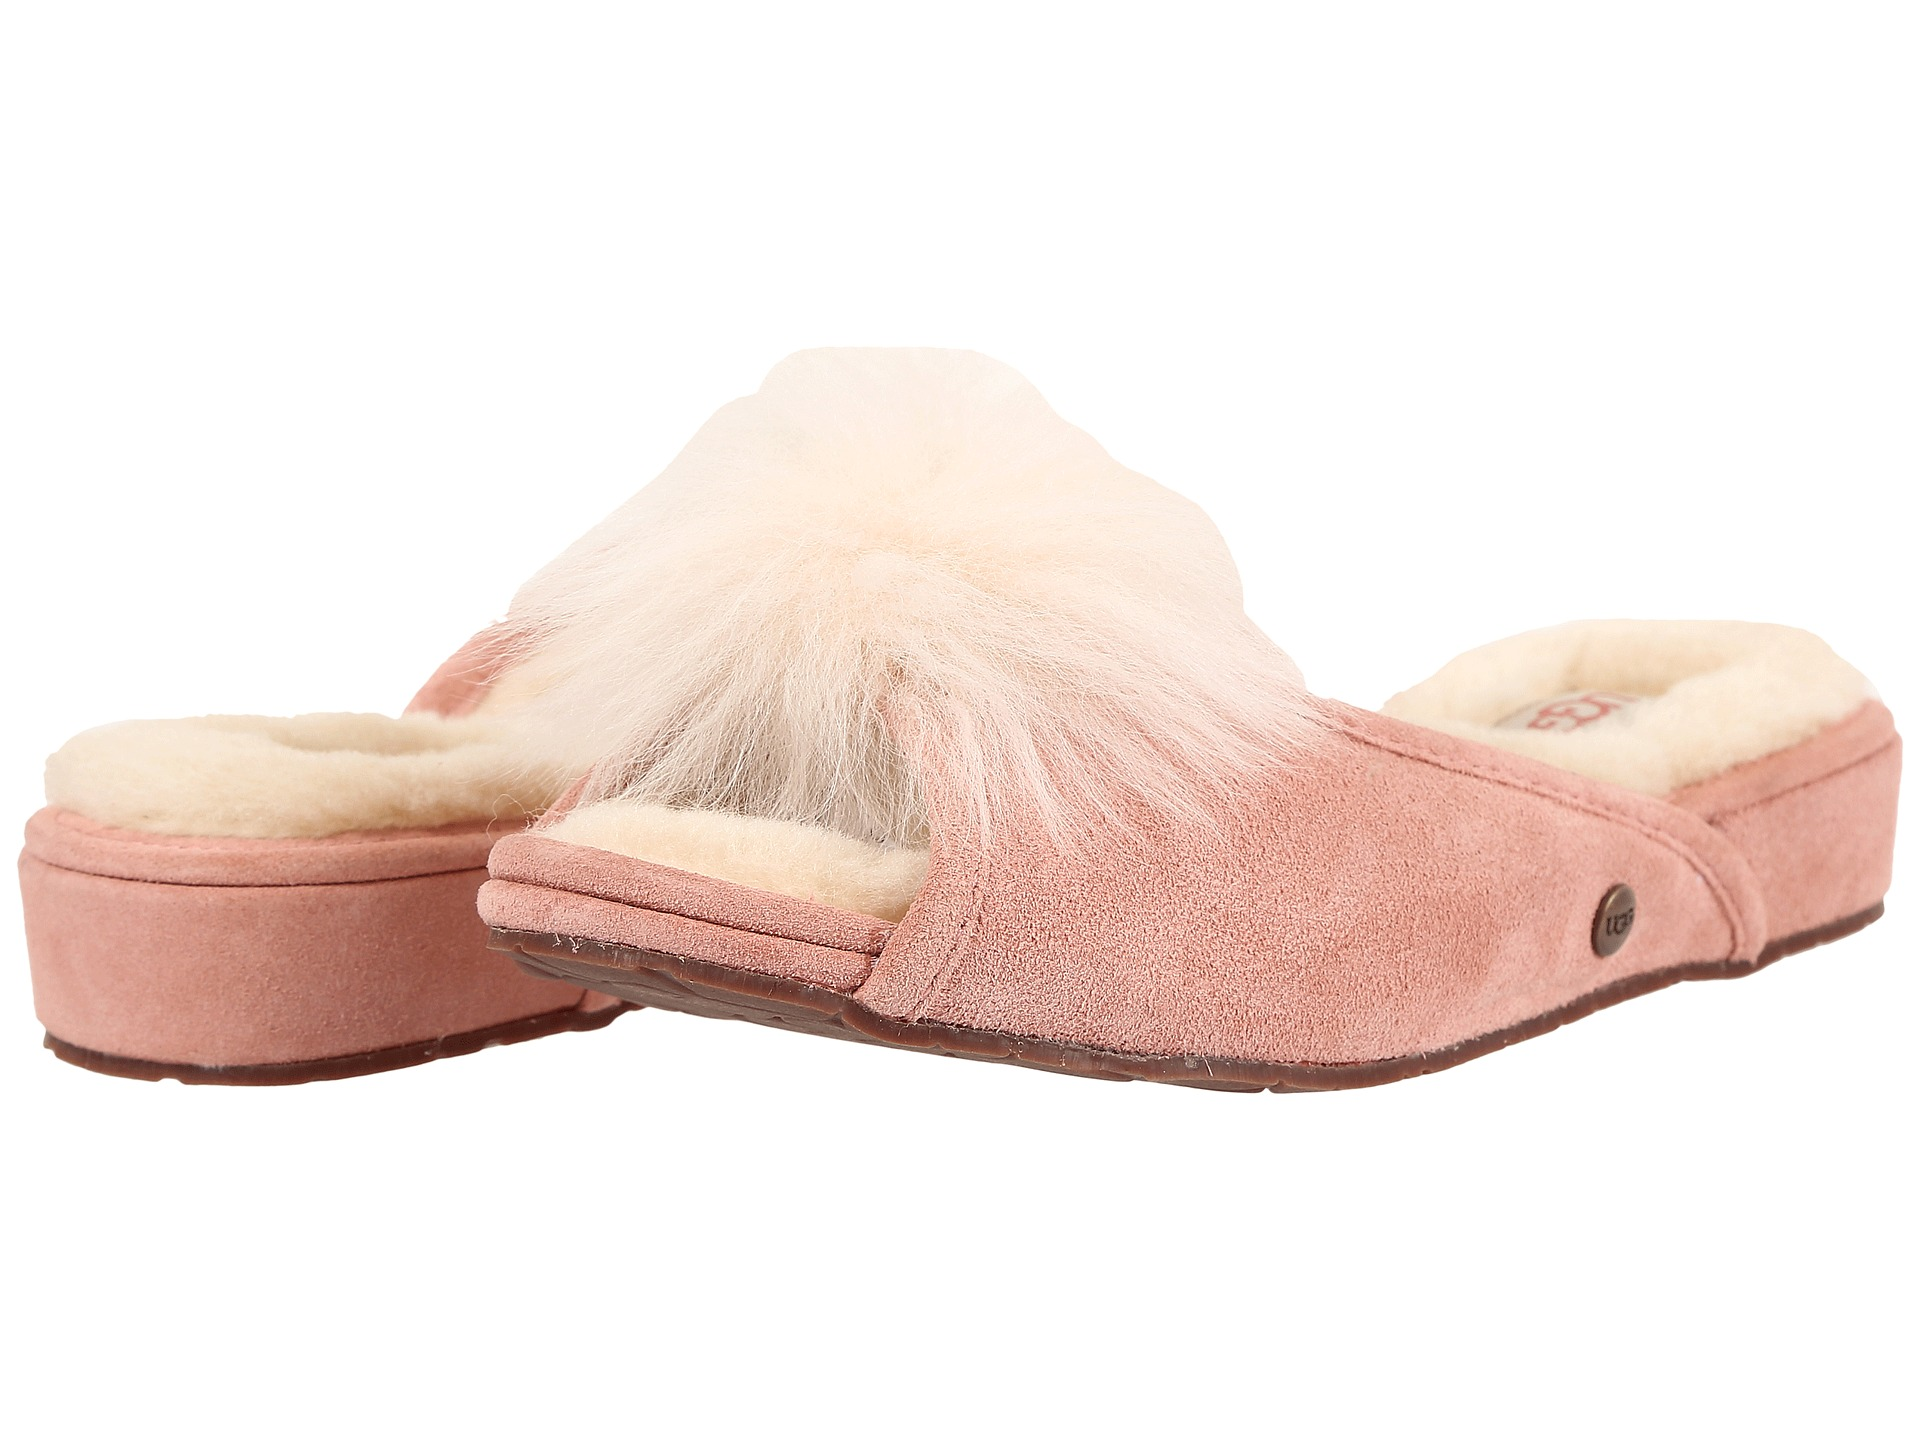 7b818b85034 Zappos Pink Ugg Slippers